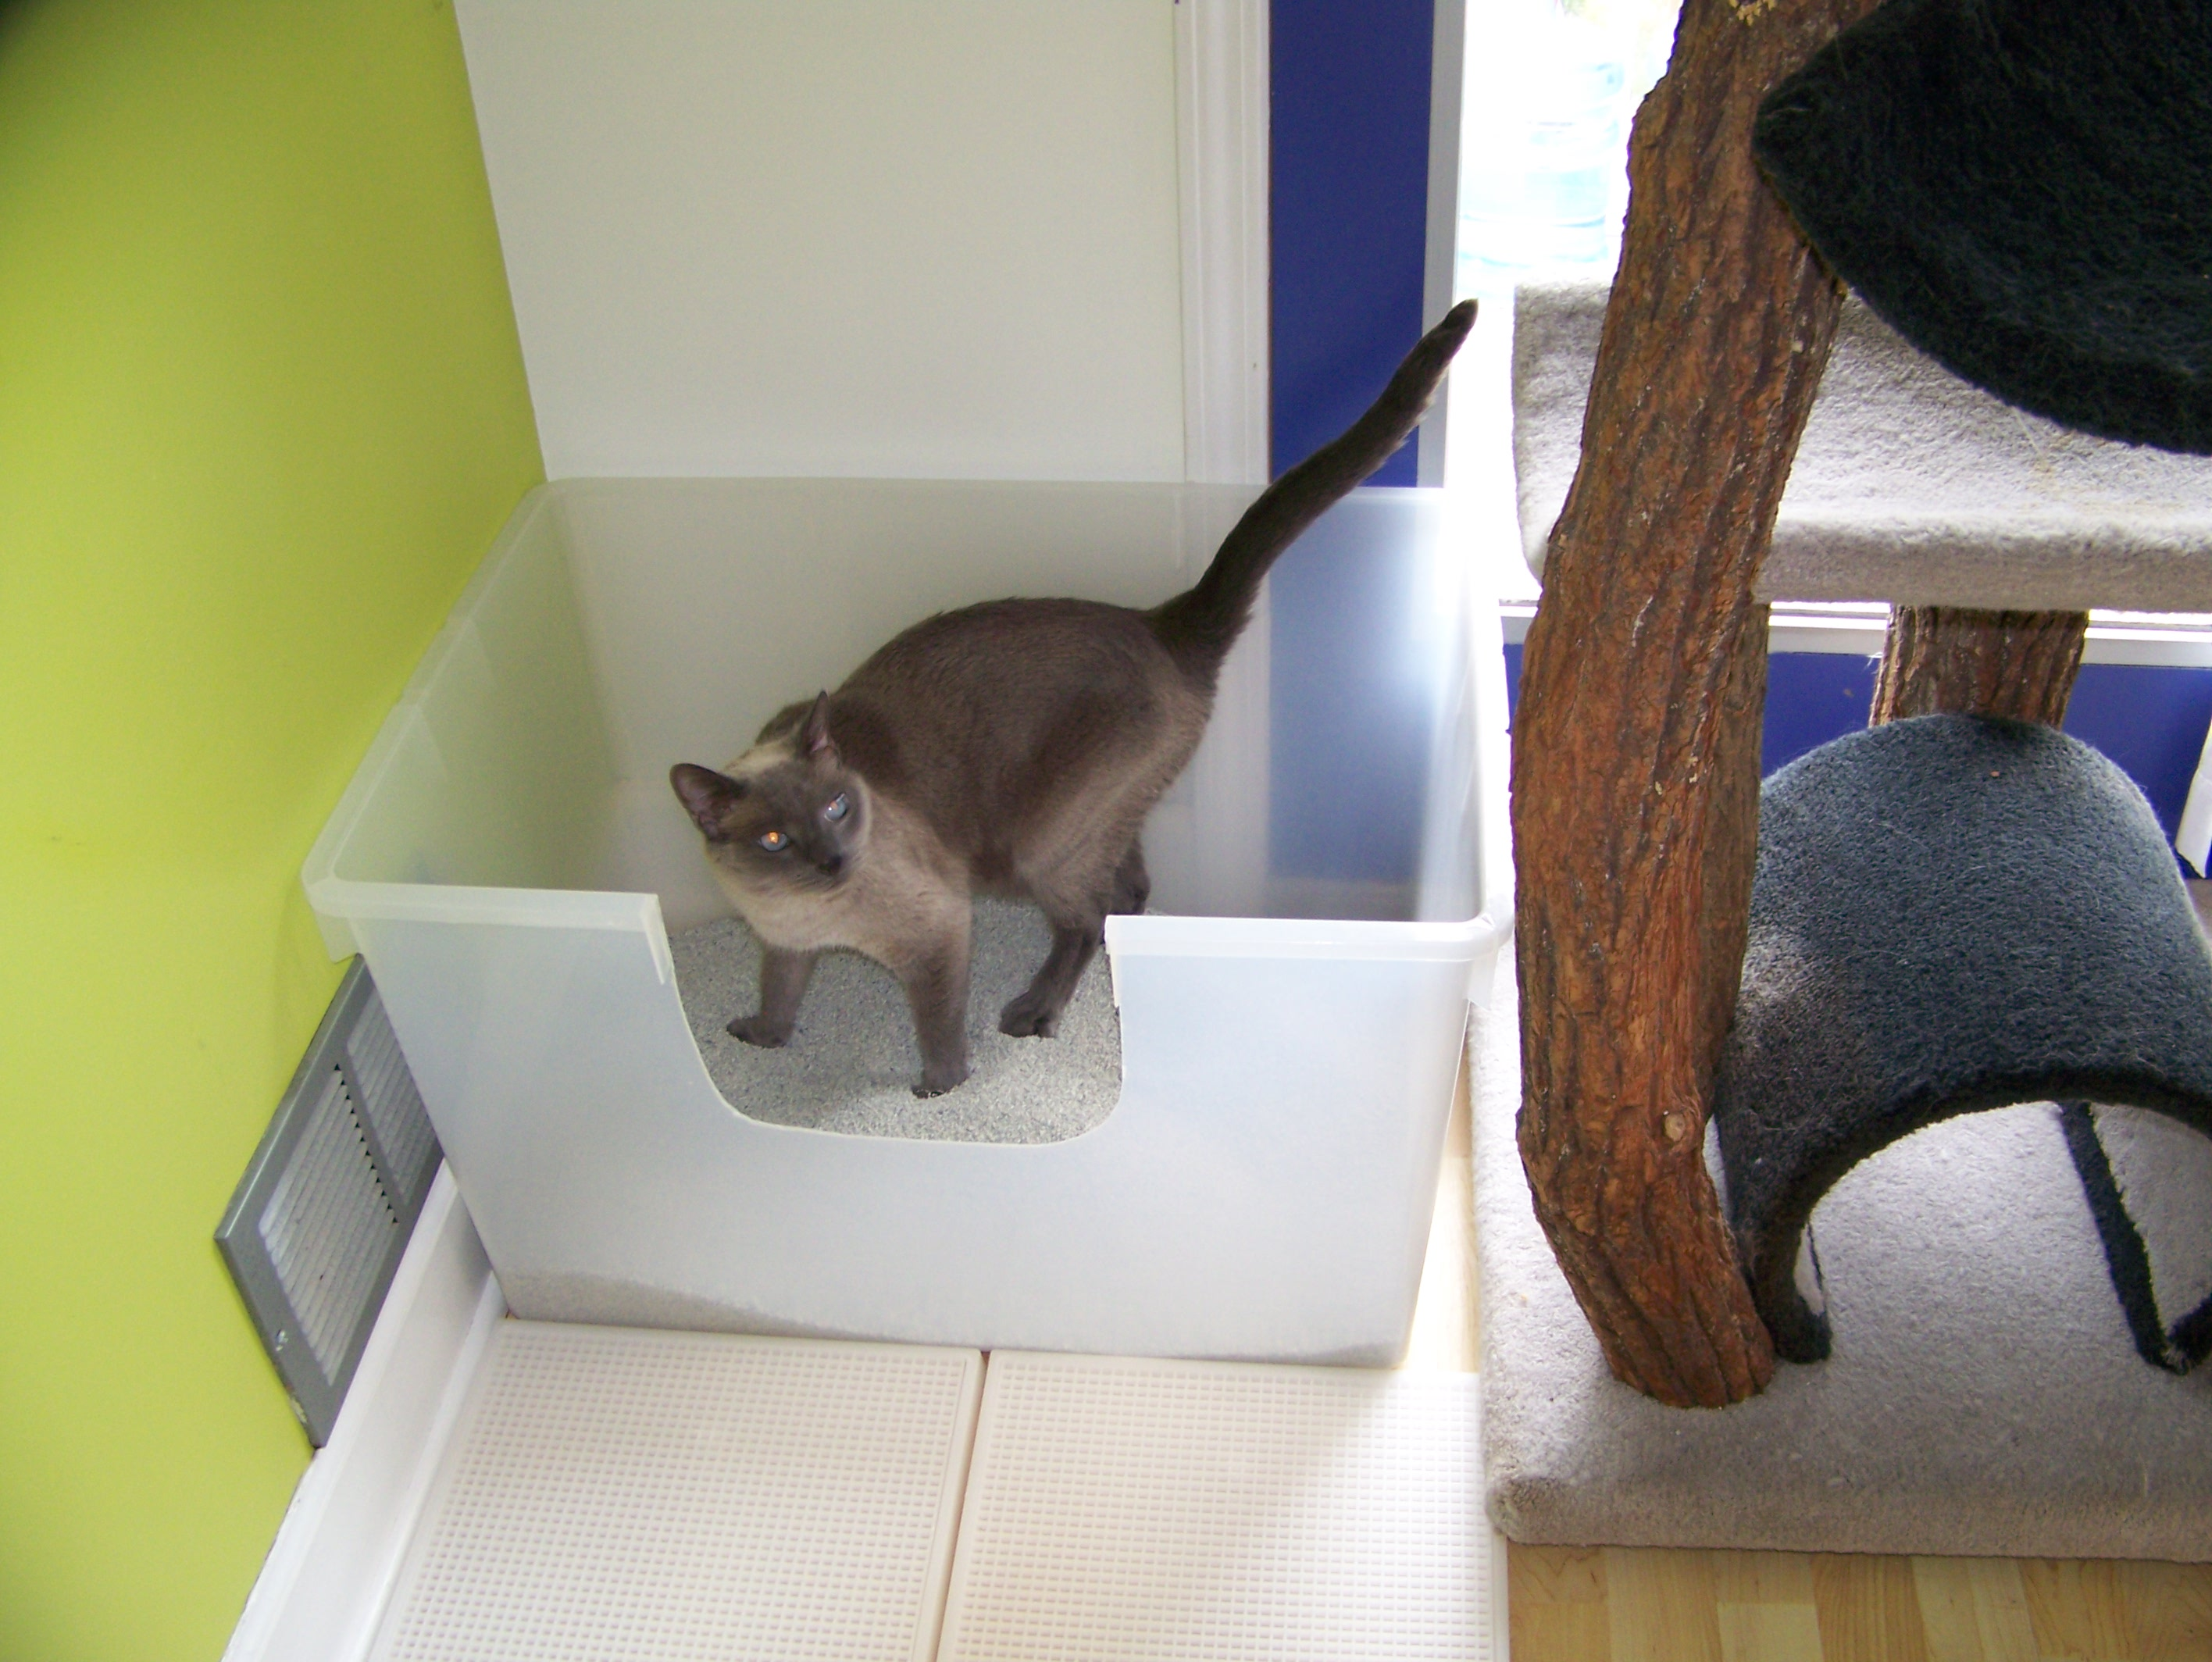 Our preferred litter box. The bigger the box the better!